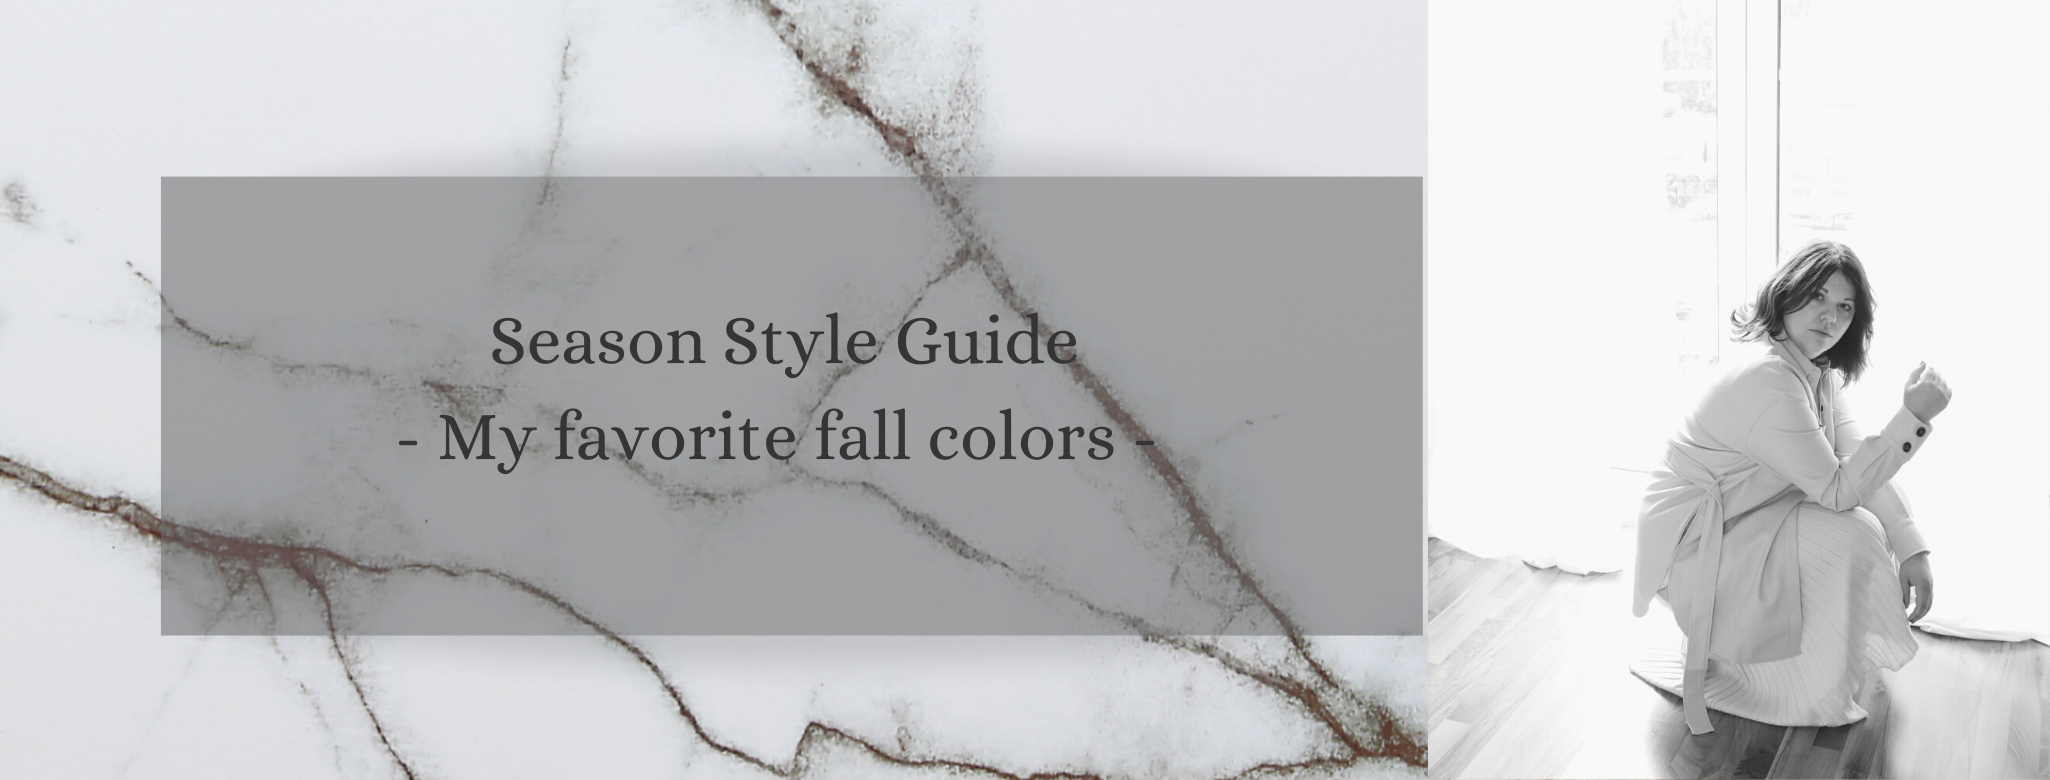 Season Style Guide: My favorite fall colors